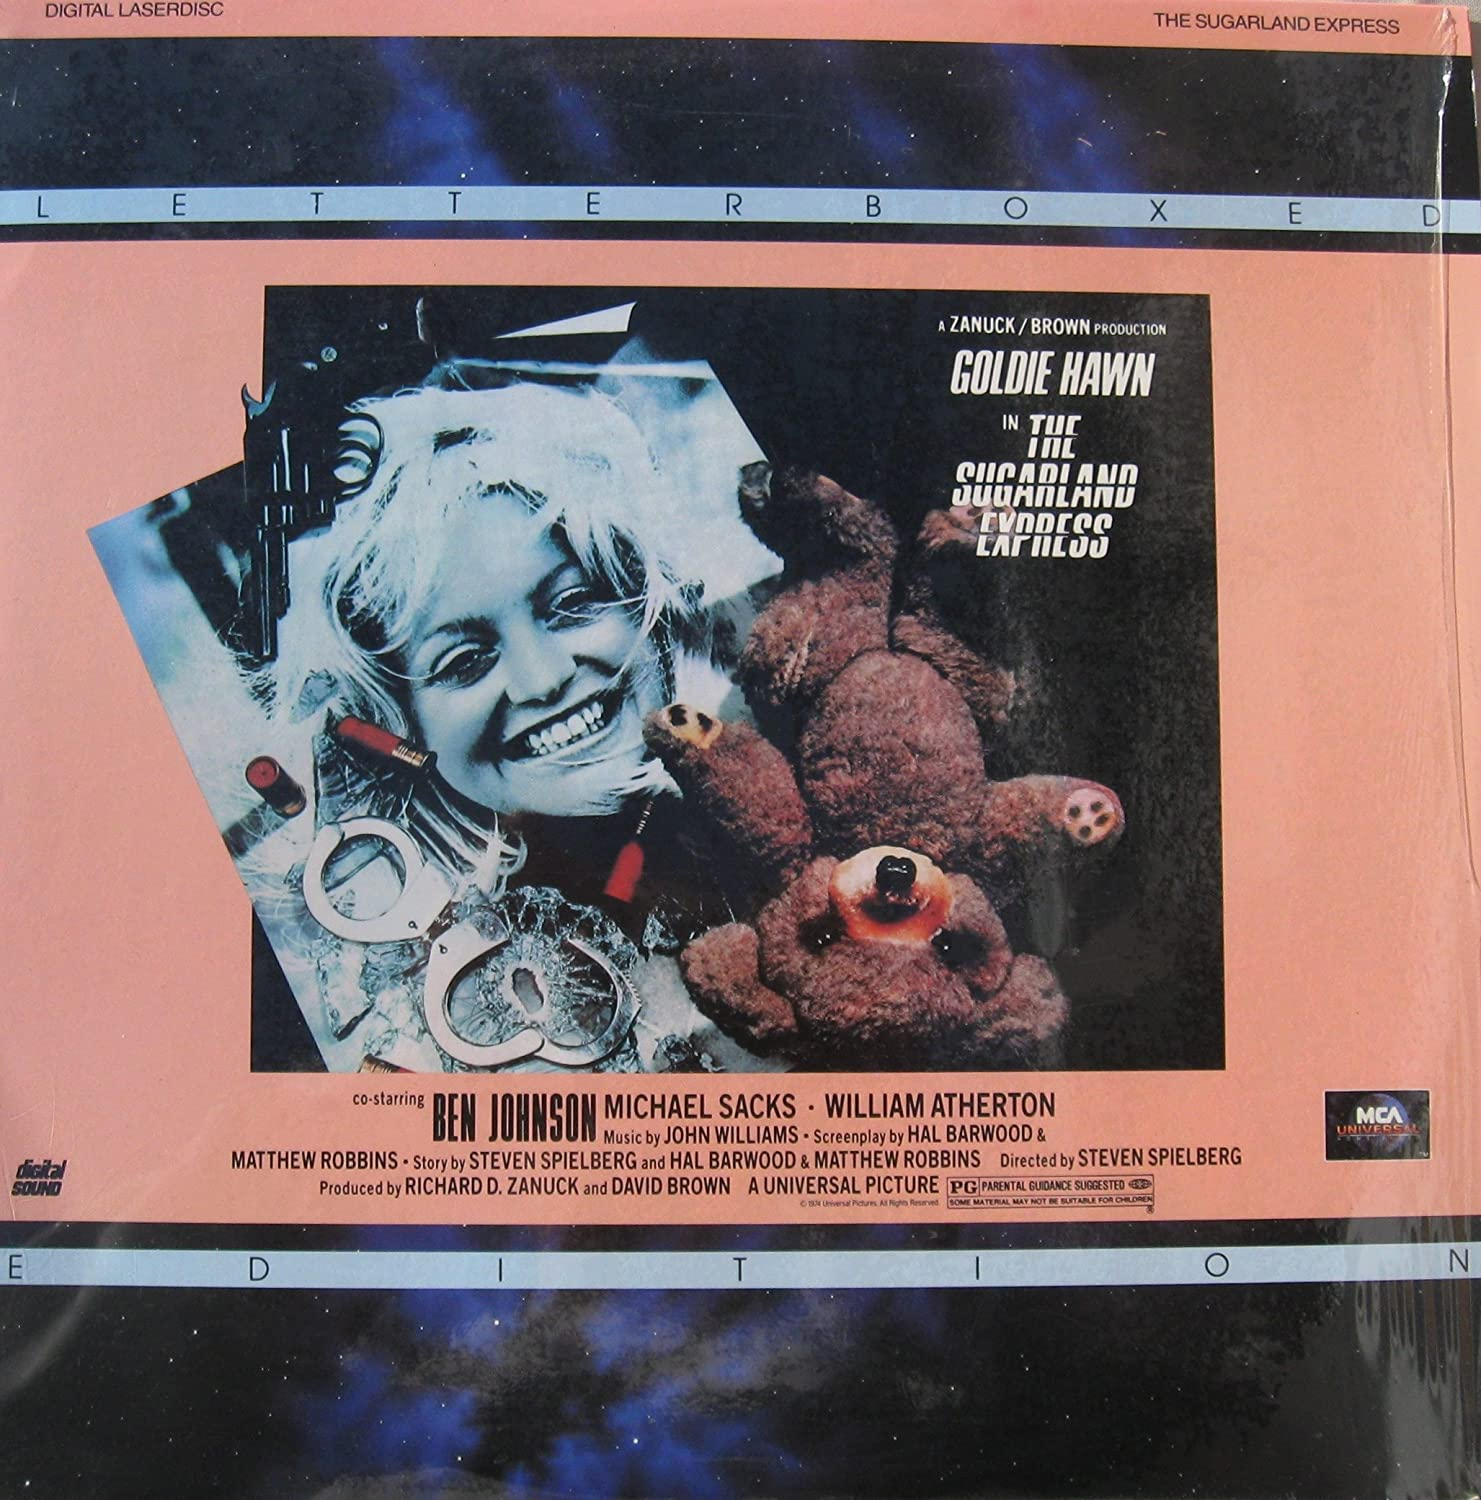 THE SUGARLAND EXPRESS laserdisc